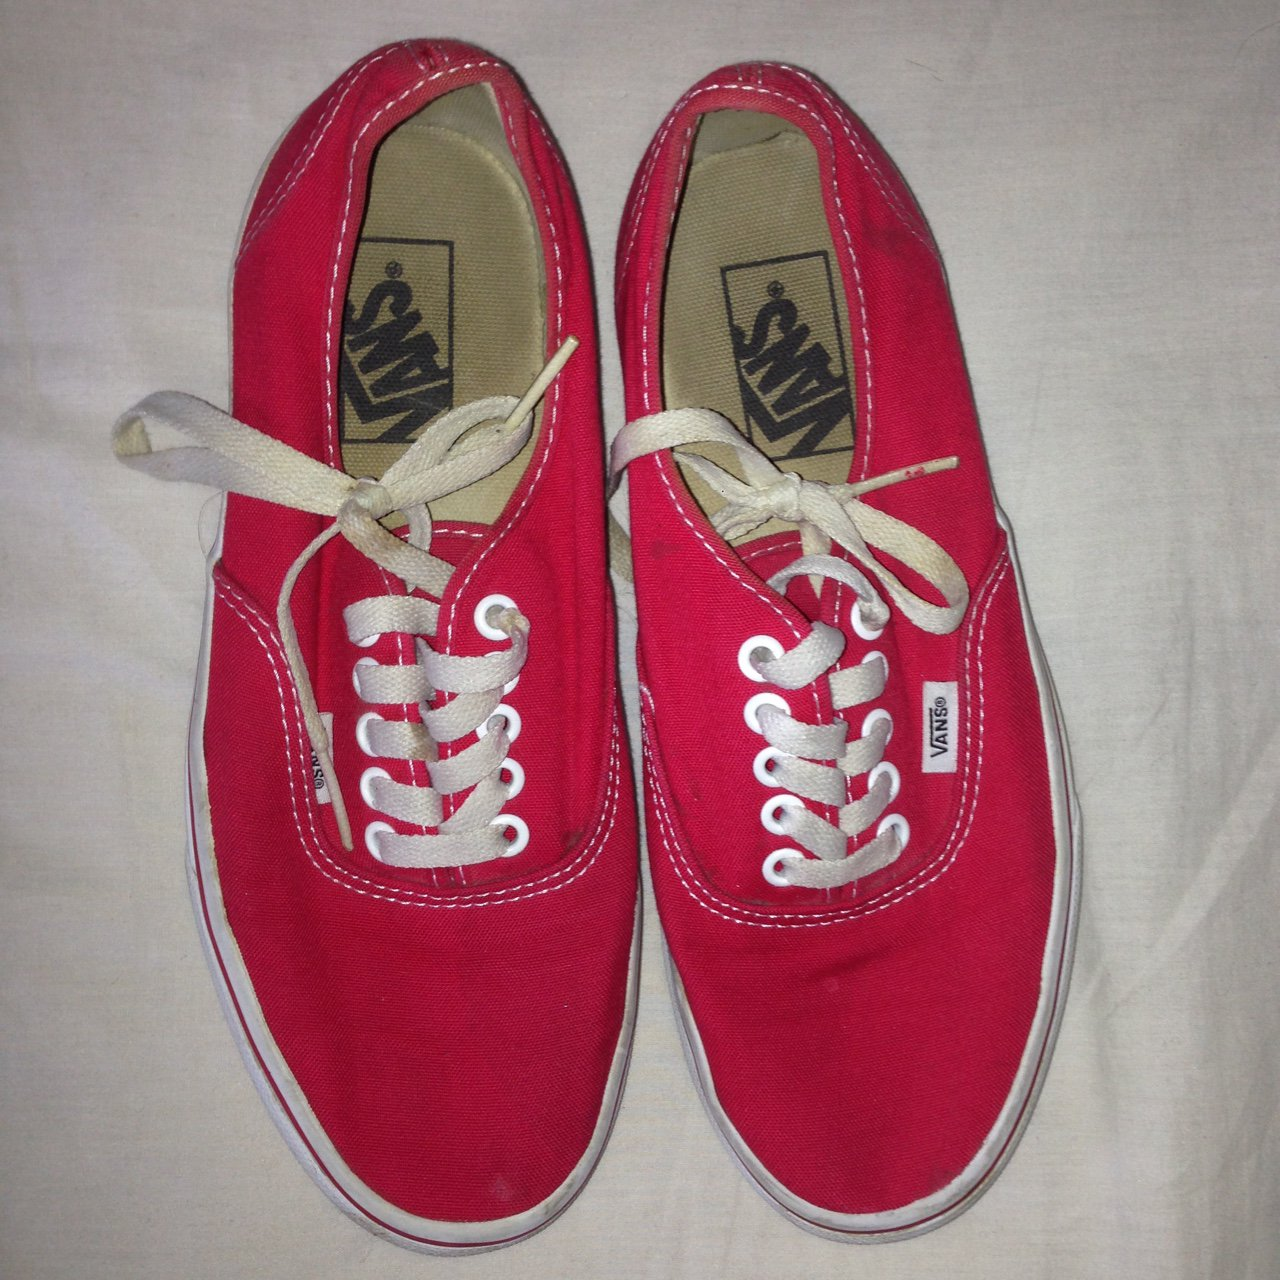 43165a3fa655 Women s 6 and men s 7 light red Vans